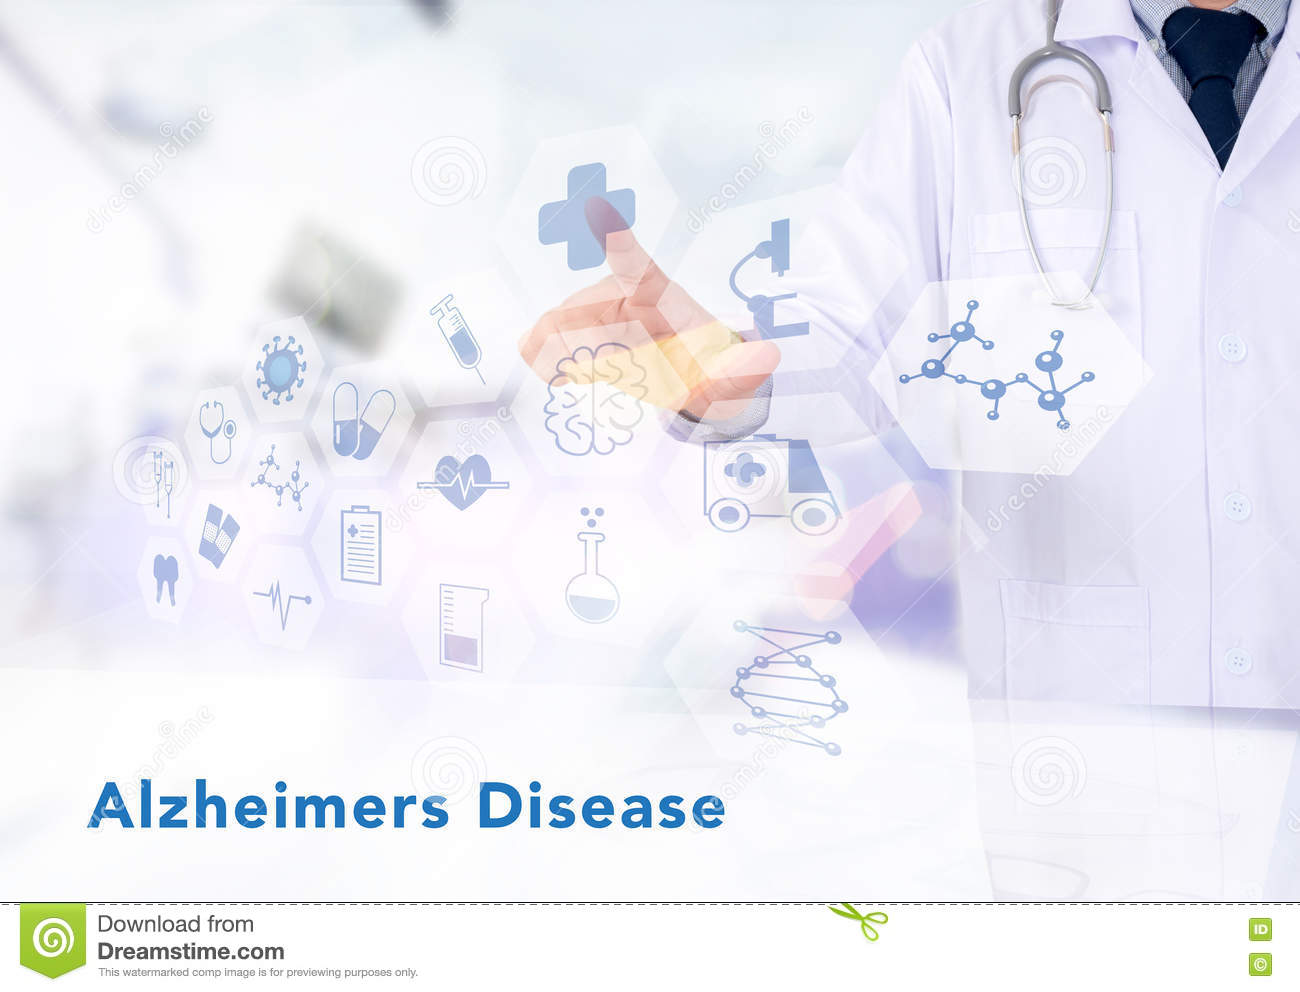 Alzheimers Disease Concept Royalty Free Stock Photo